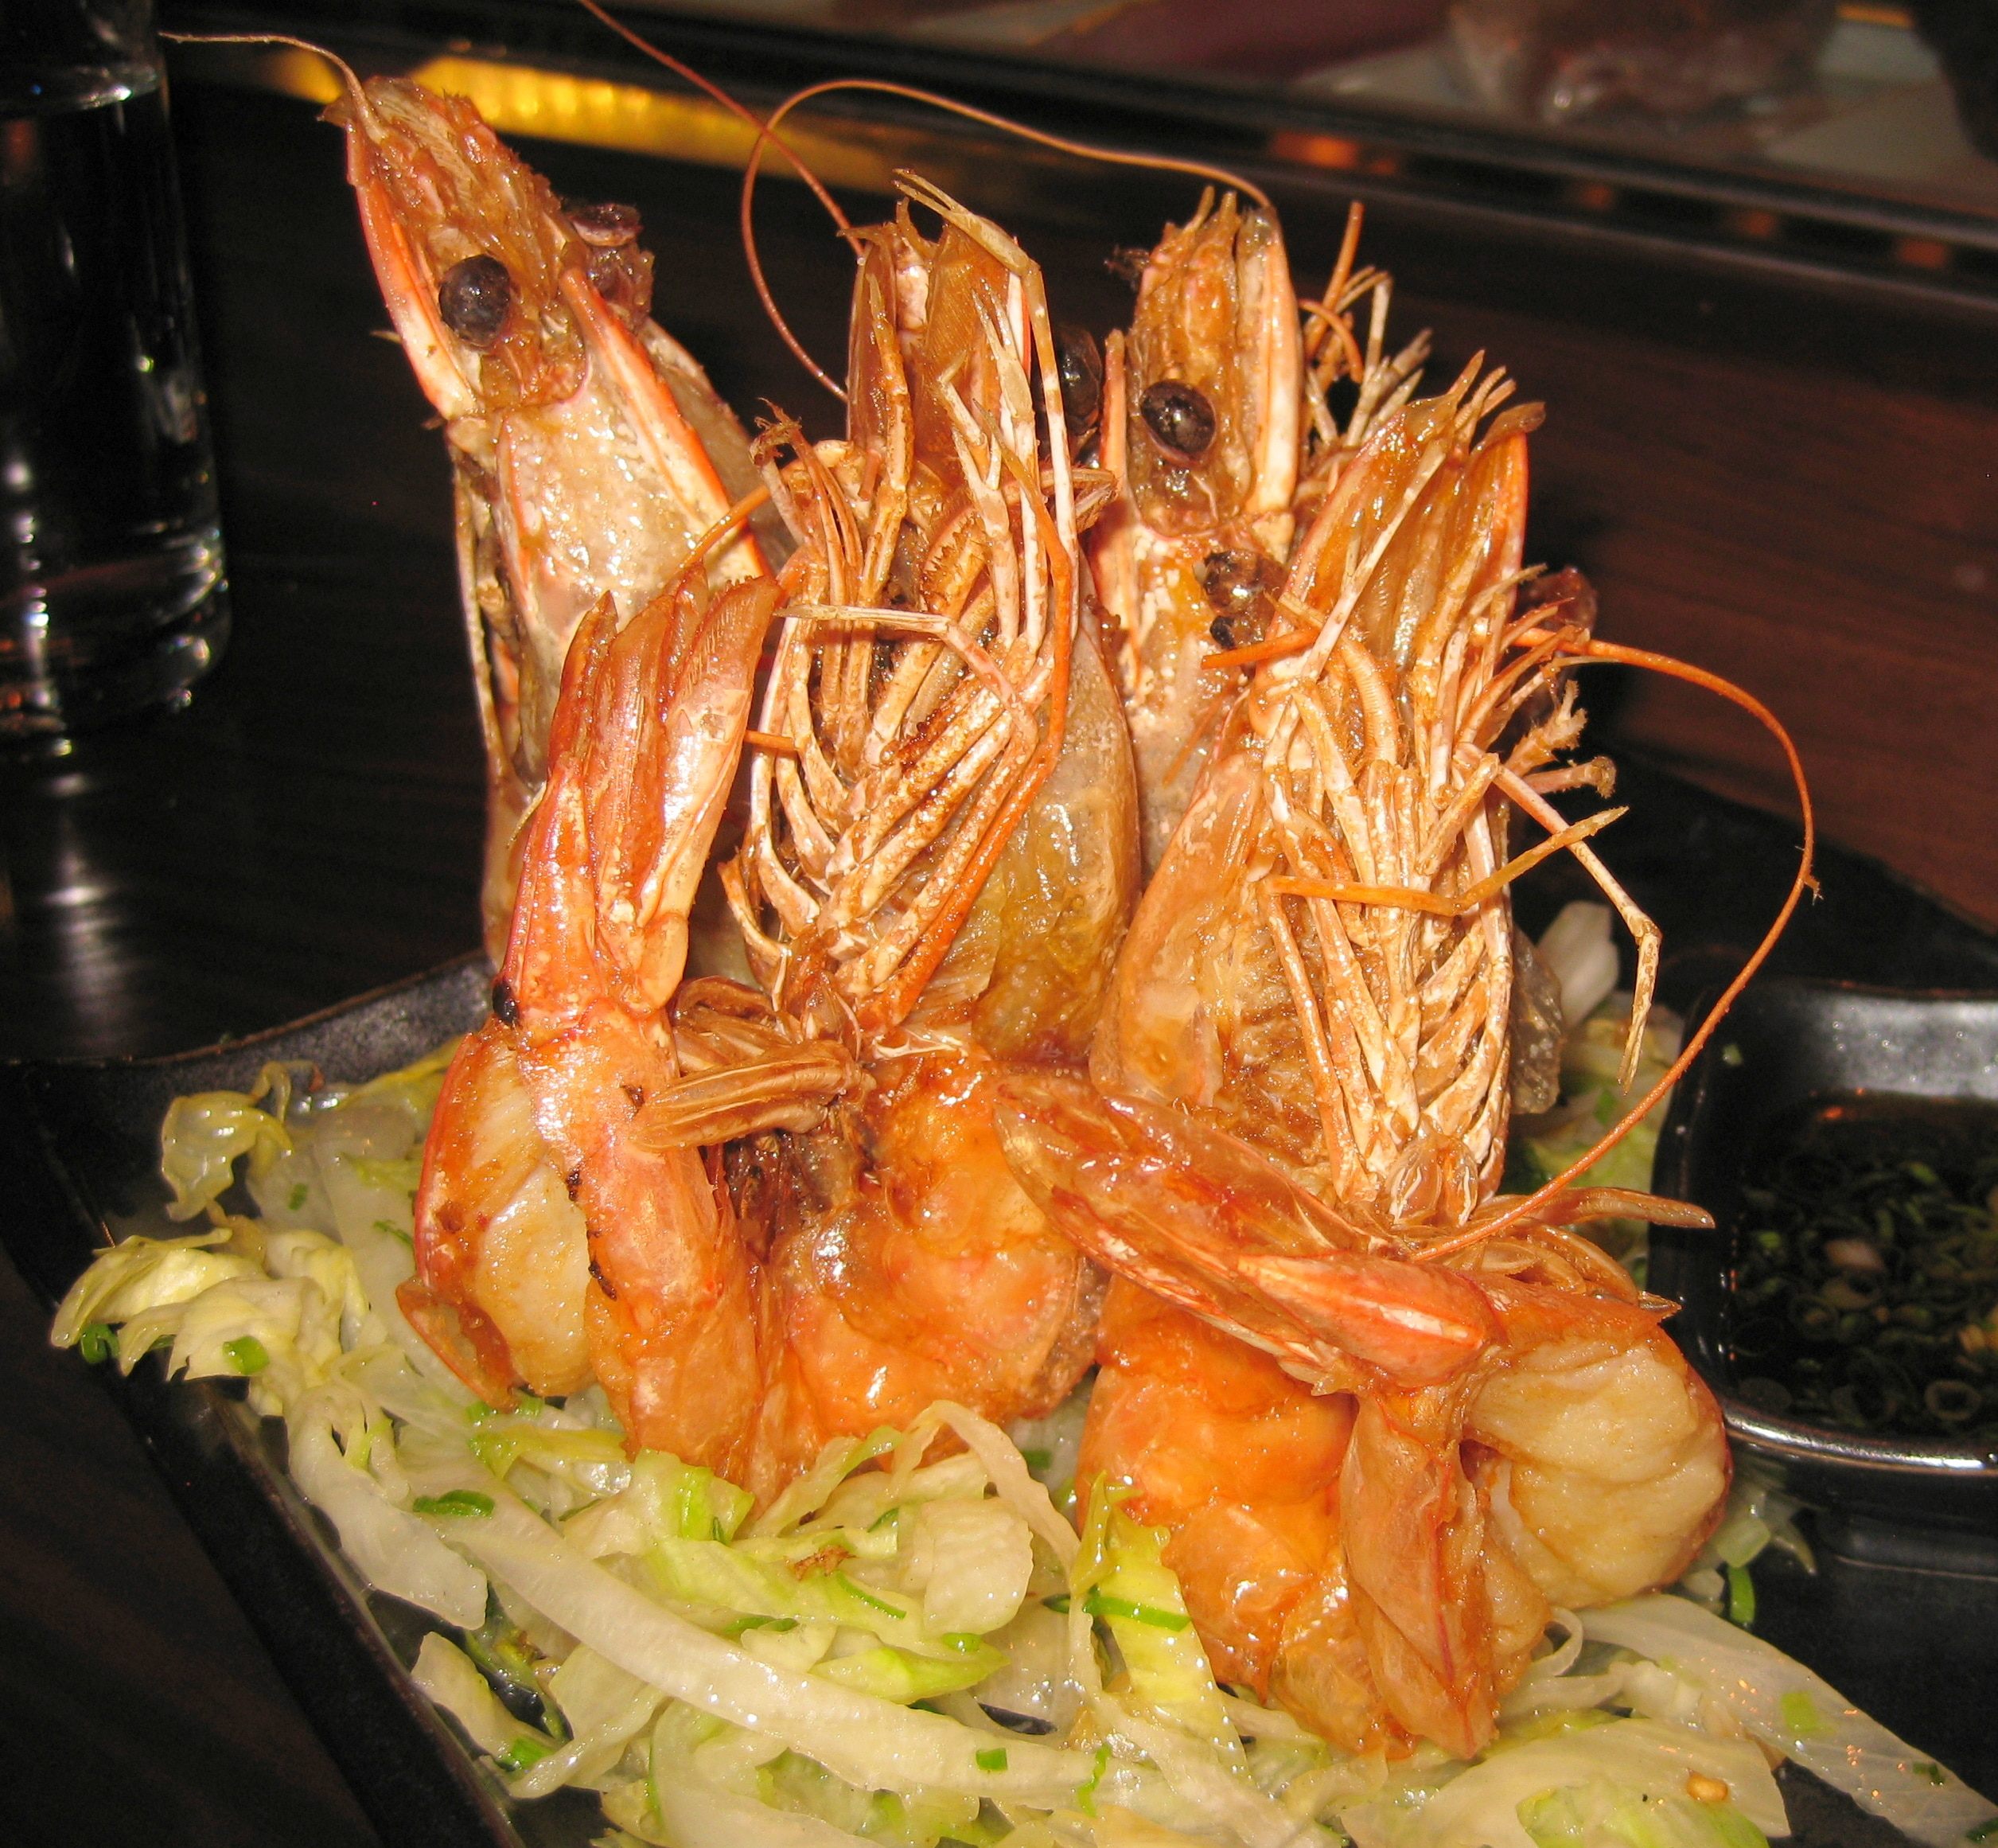 Salt & pepper shrimp: lemon ponzu & spicy lettuce | GAYOT's Blog